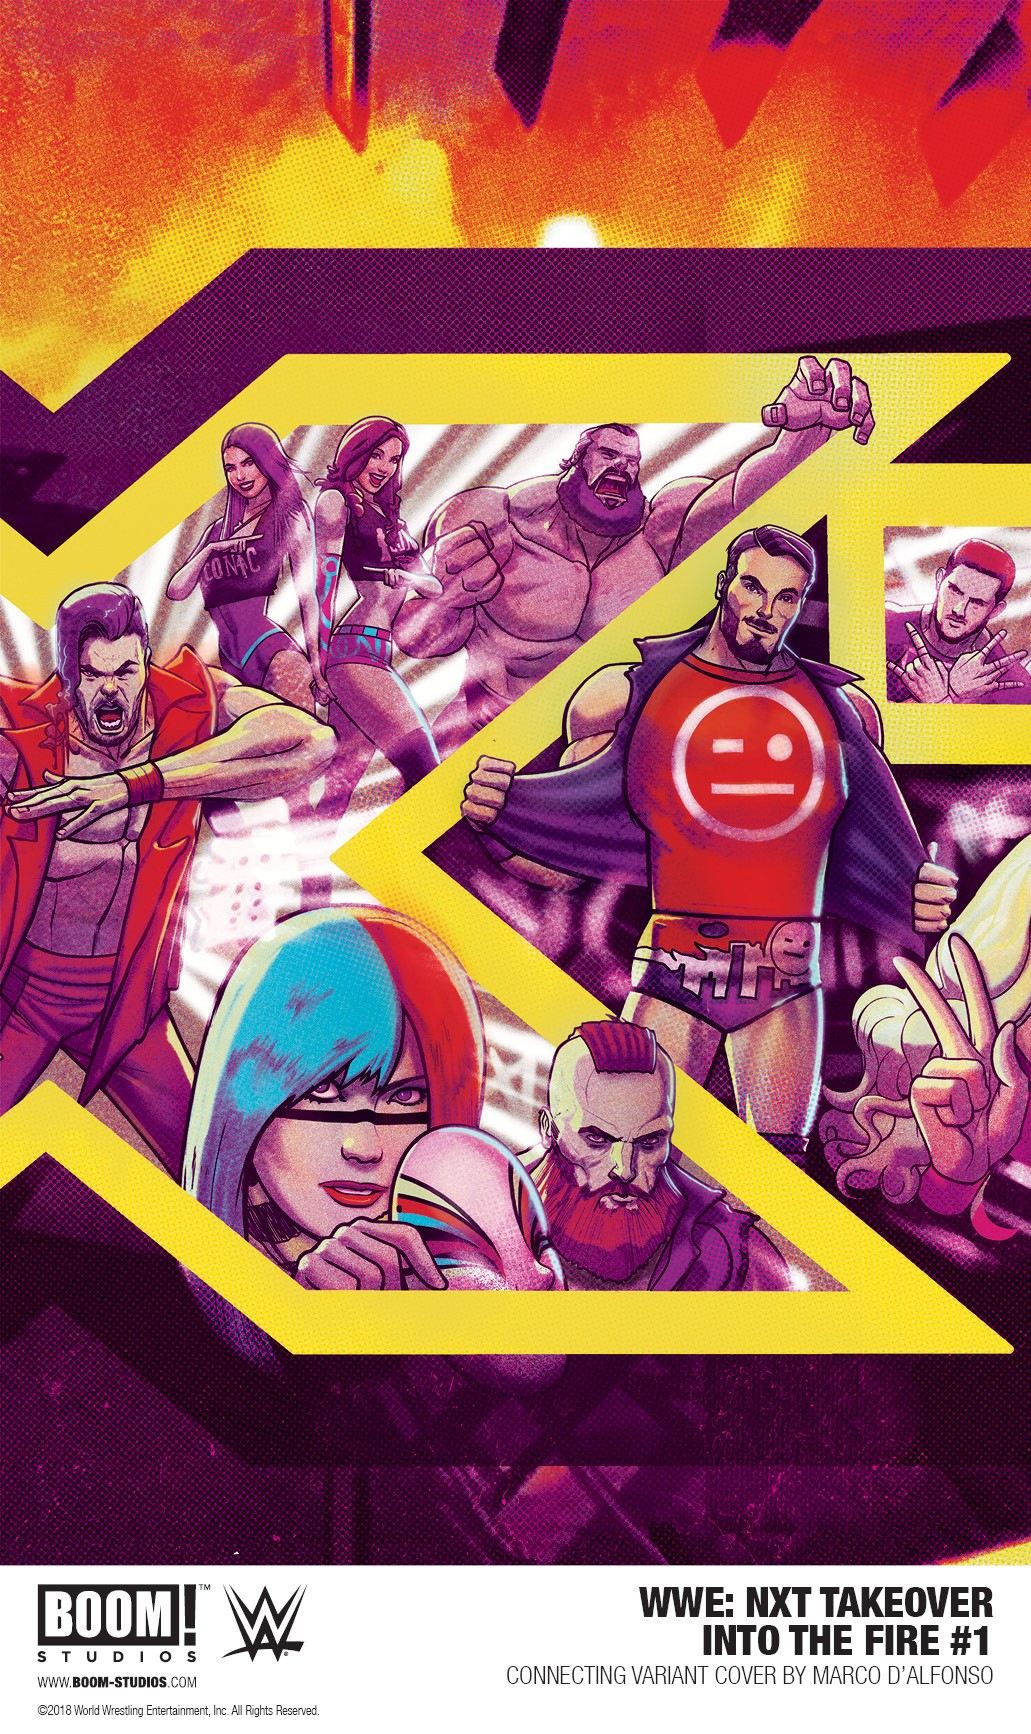 WWE_NXT_IntoFire_001_Variant_PROMO